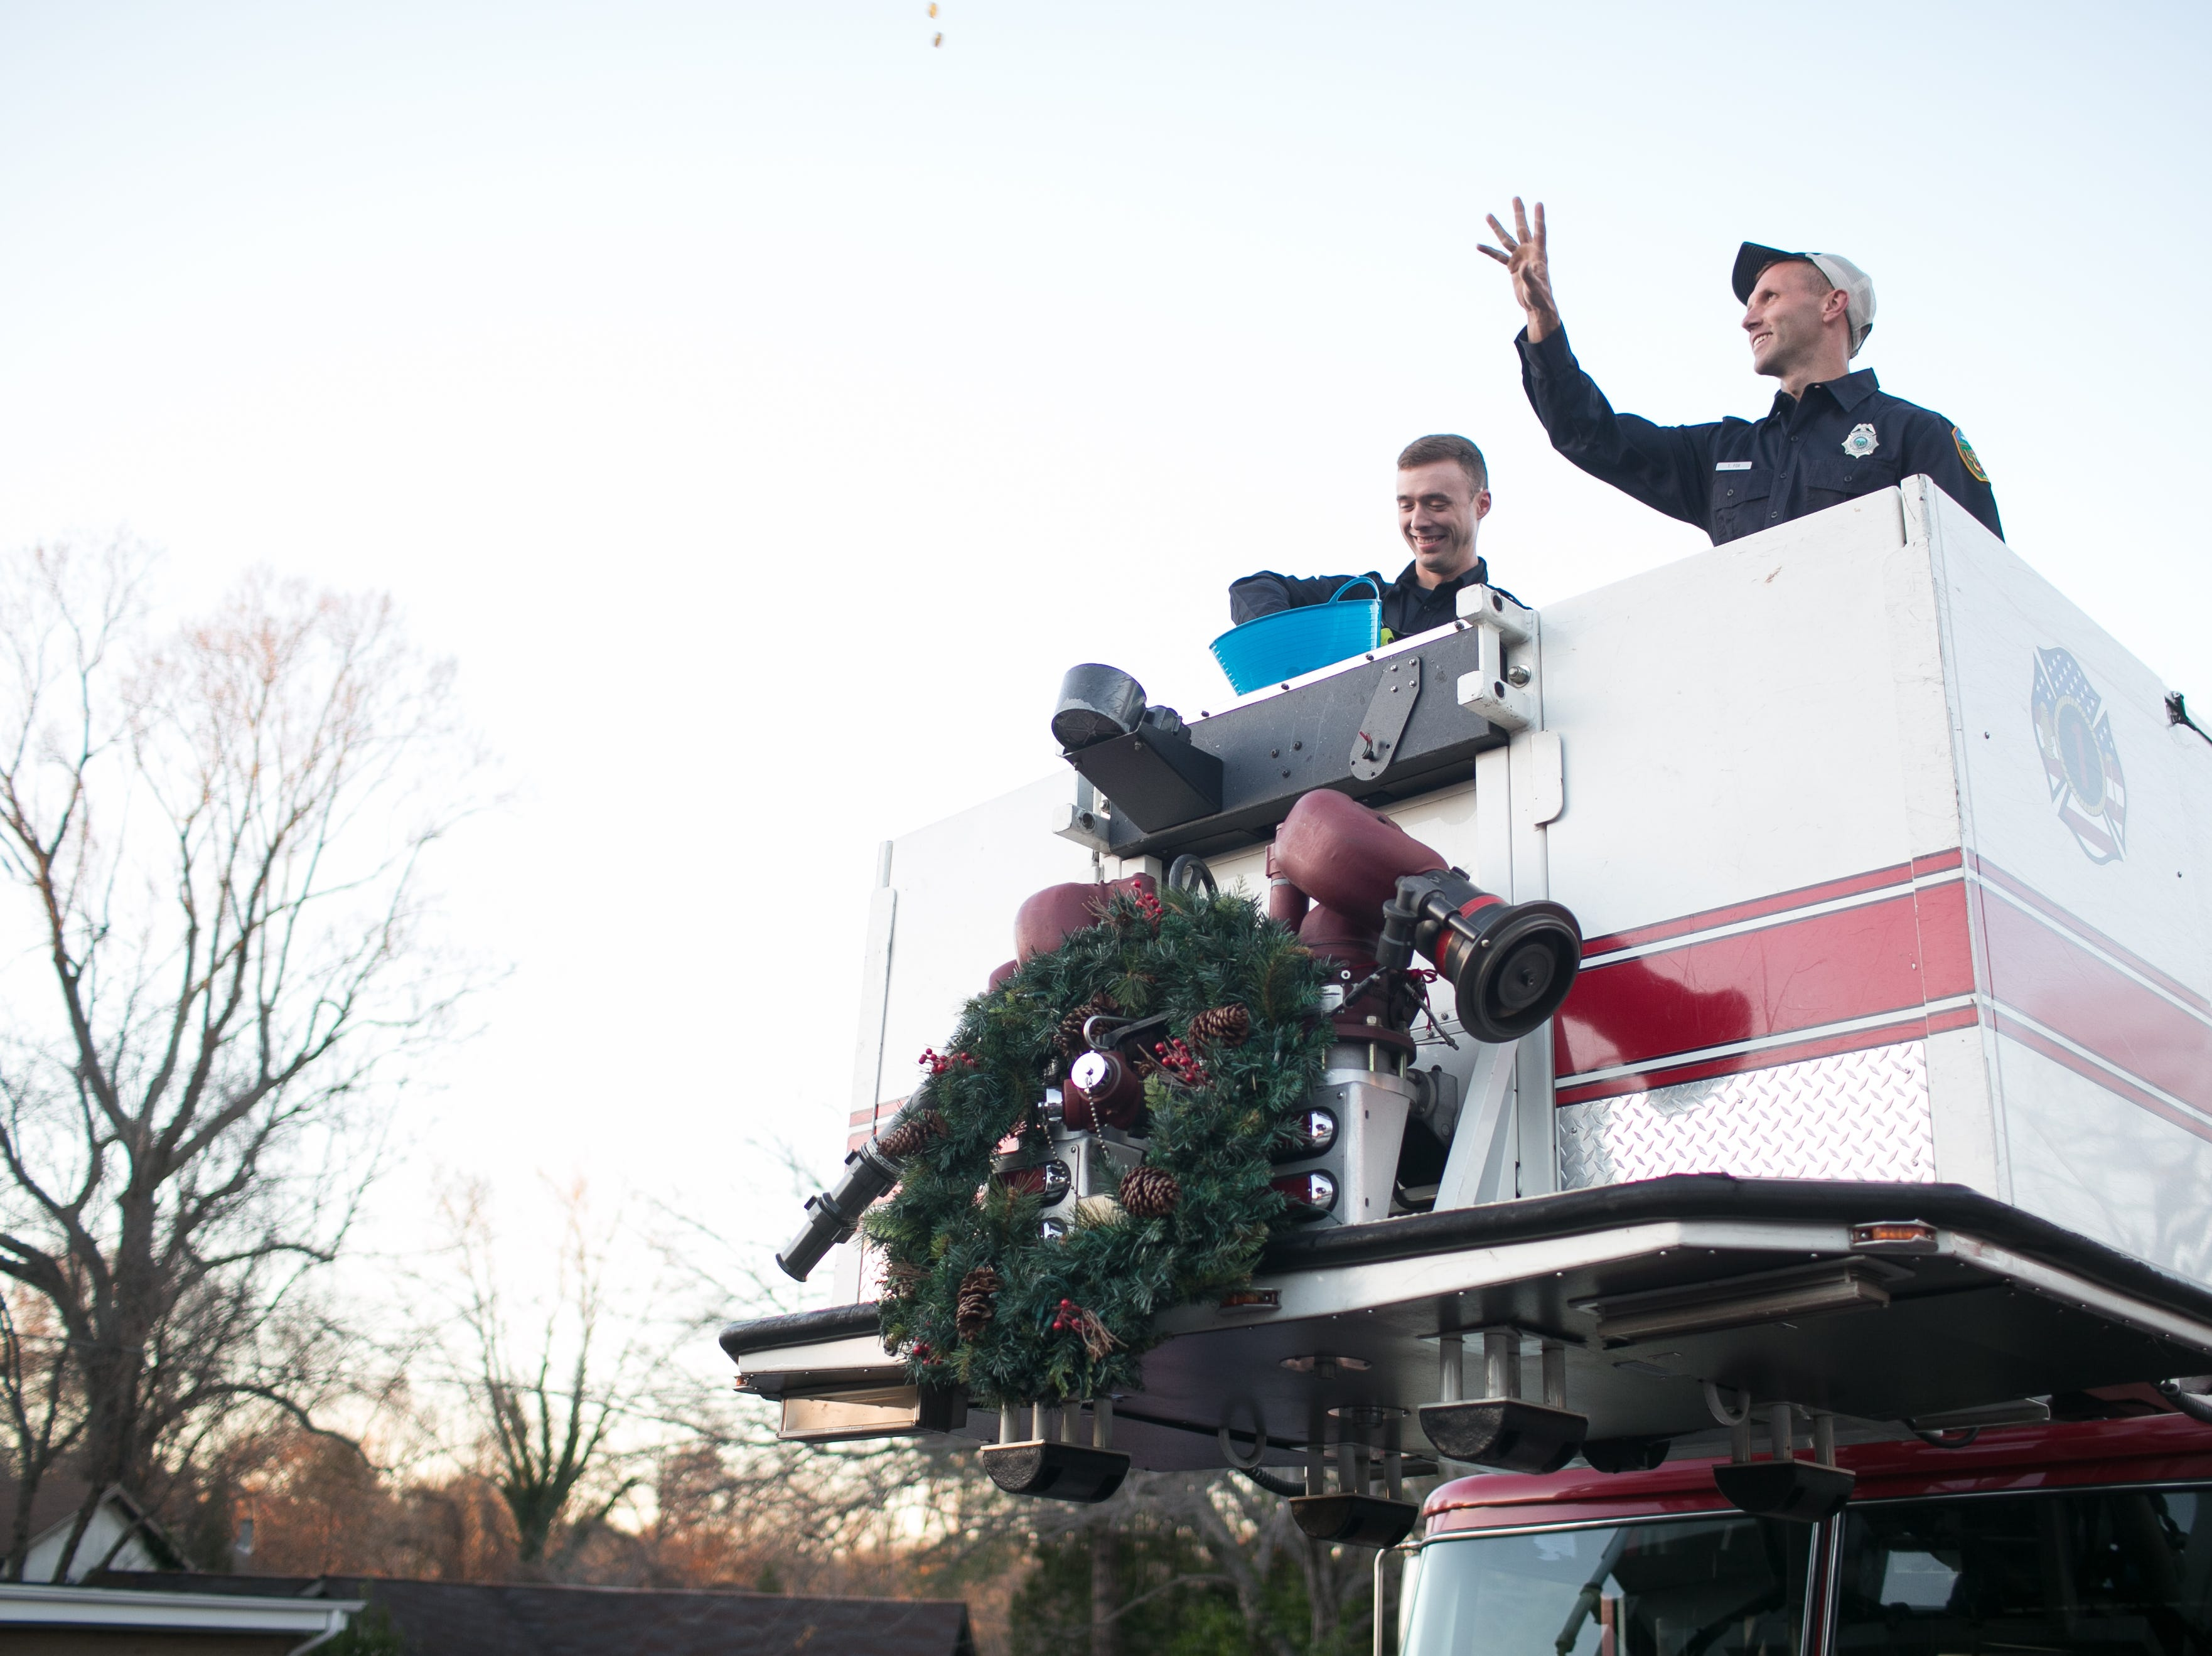 Asheville Fire Department helps with The Great Gelt Drop during Chanukah Live!, Asheville's community Hanukkah celebration. The event was at the Chabad House on Dec. 2, 2018, in conjunction with the grand opening of their new facility on McDowell Street.